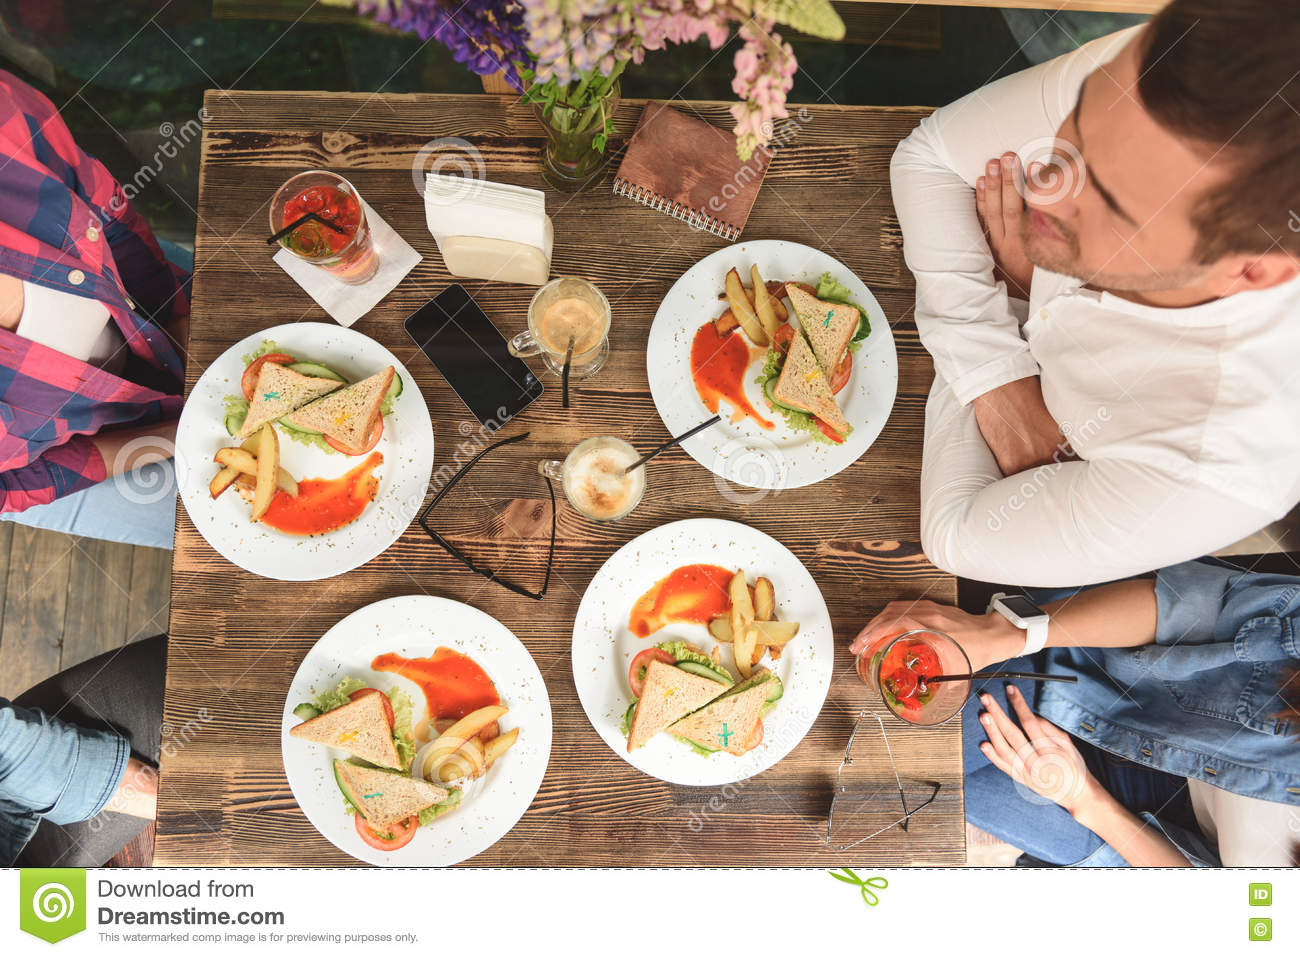 Eating Raw And Cooked Food Together